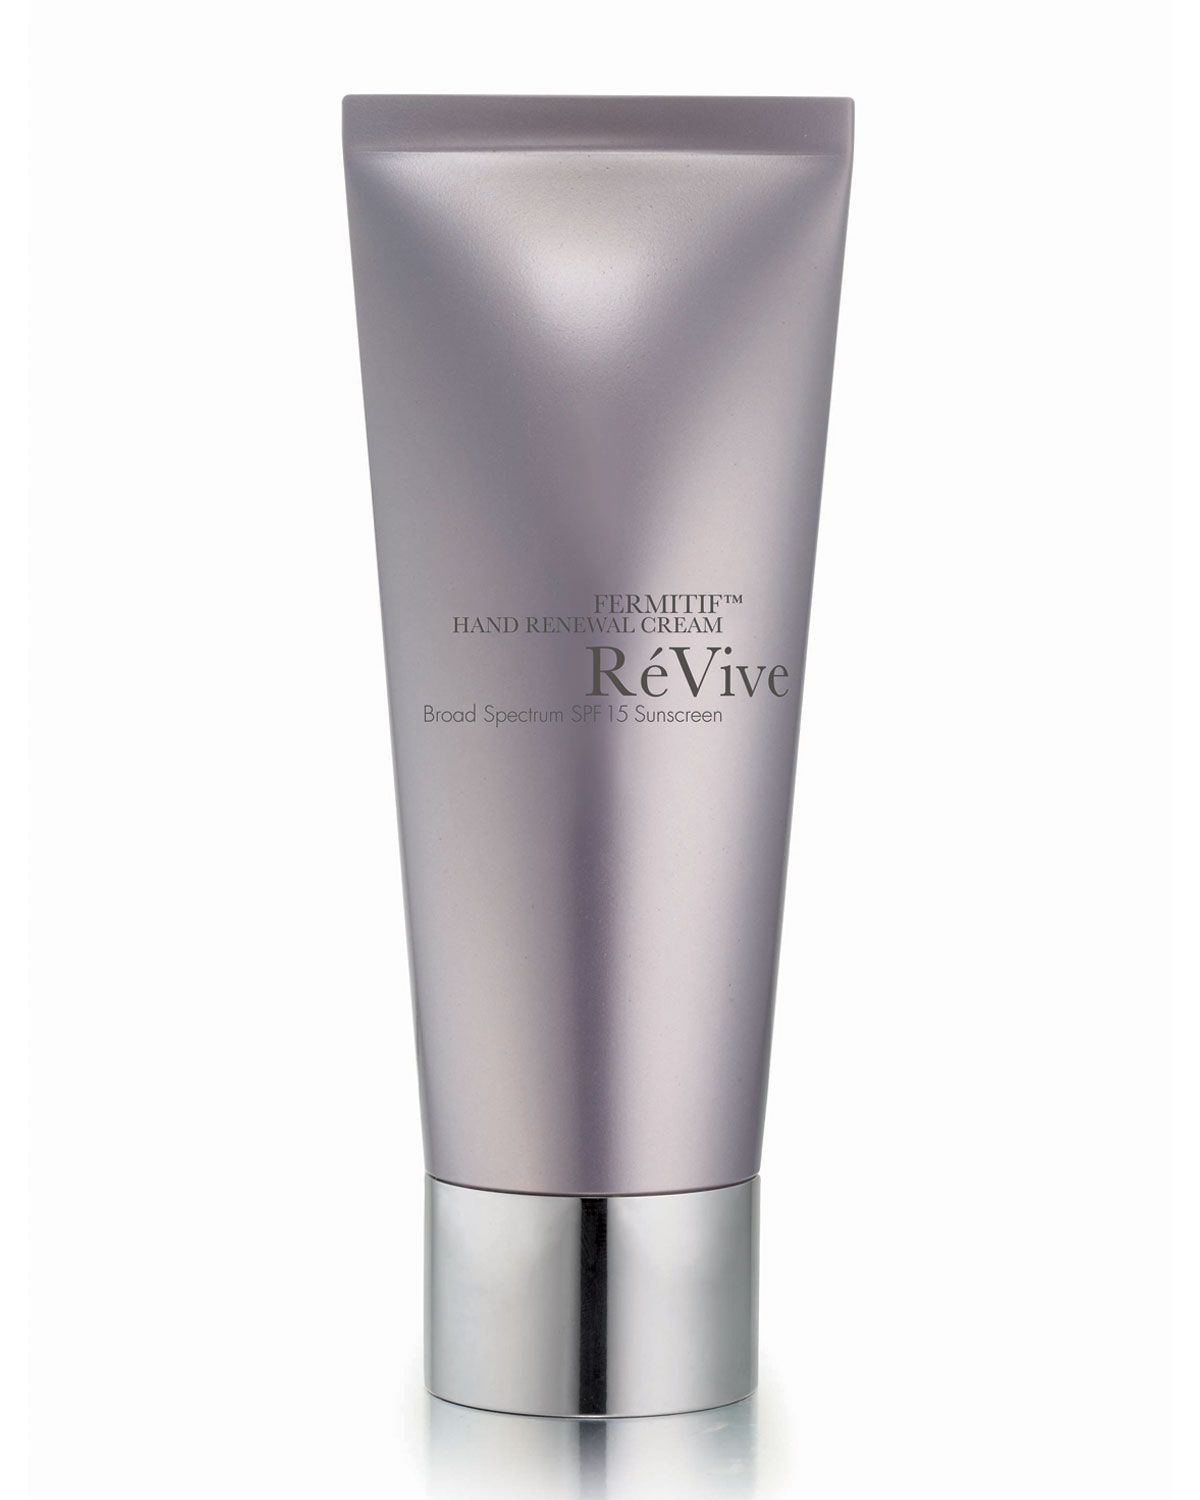 Fermitif Hand Renewal Cream   Broad Spectrum SPF 15 Sunscreen - ReVive